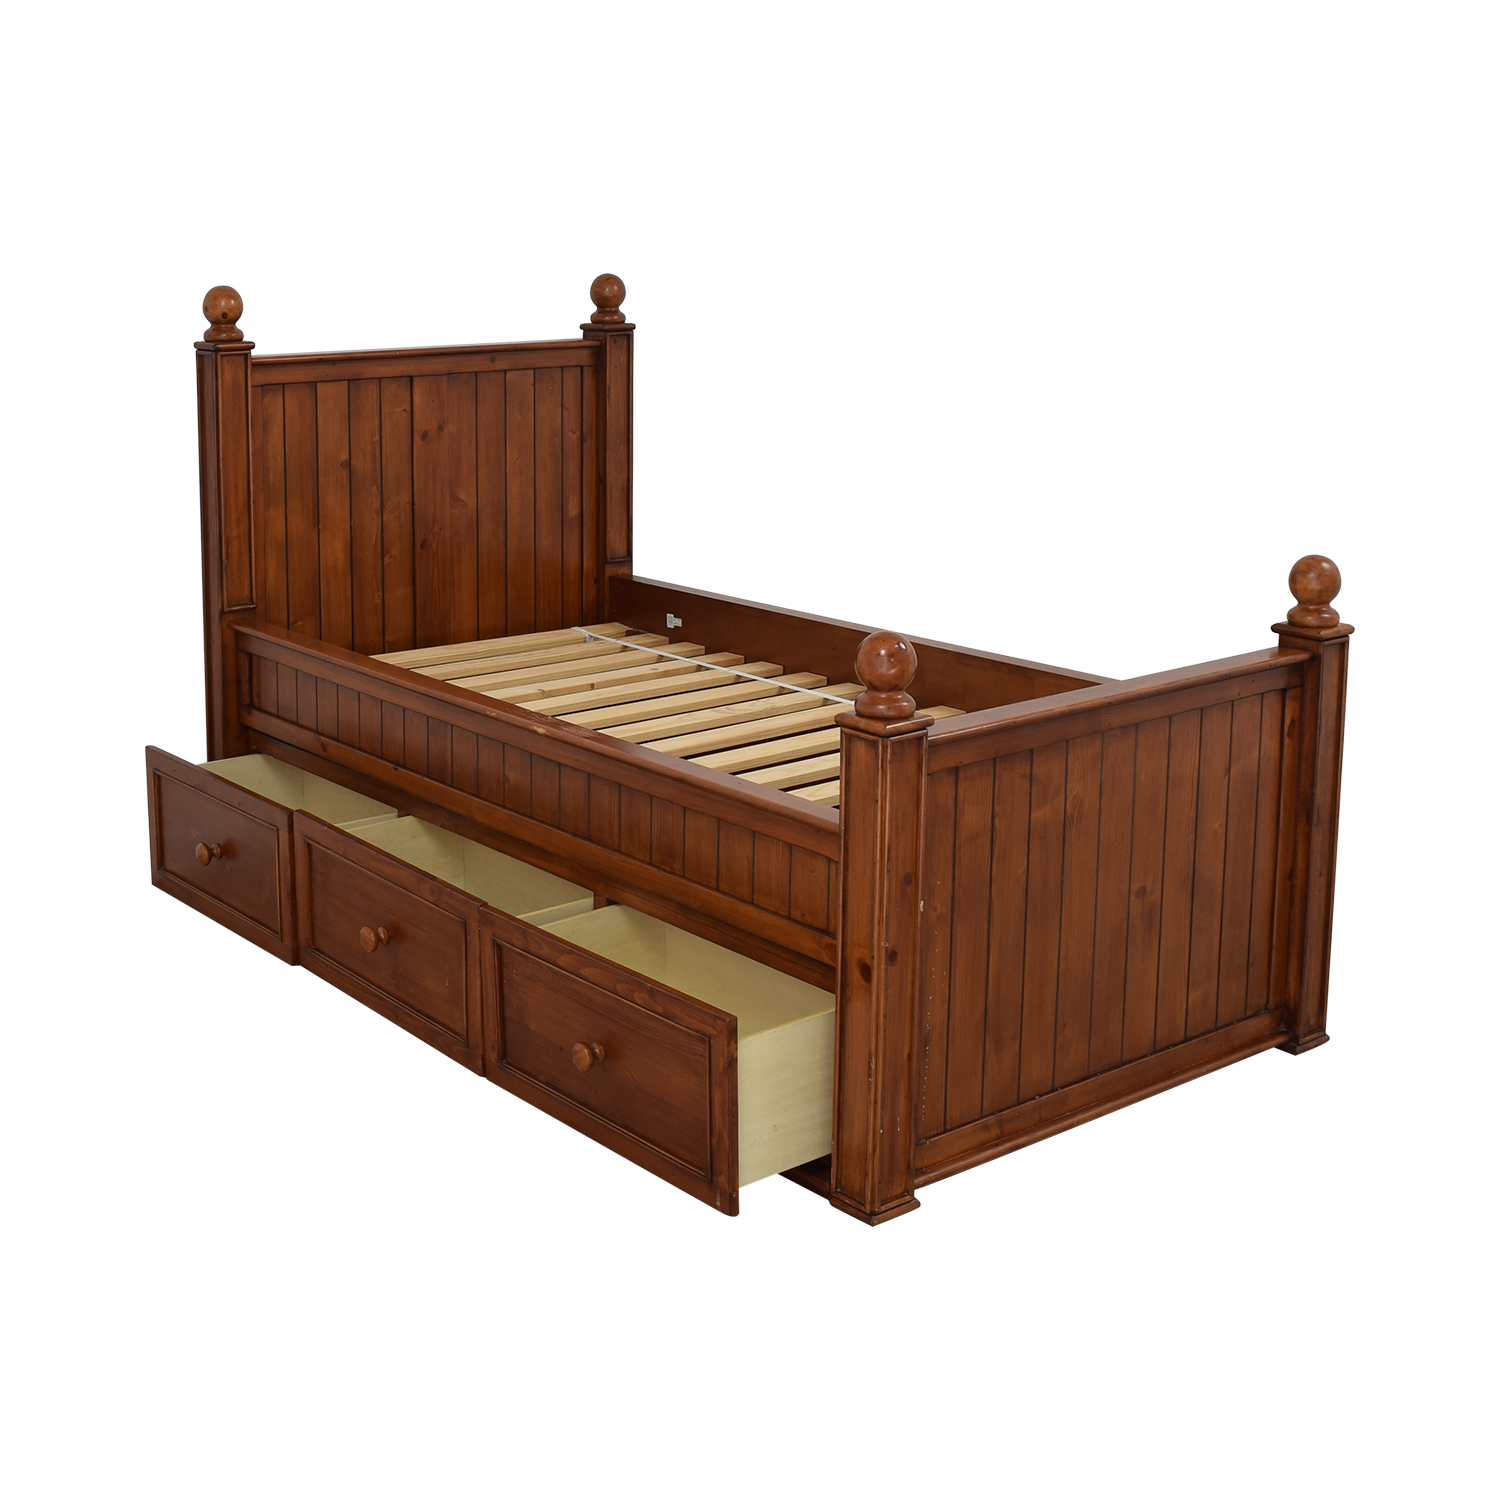 Pottery Barn Kids Bed with Storage / Beds